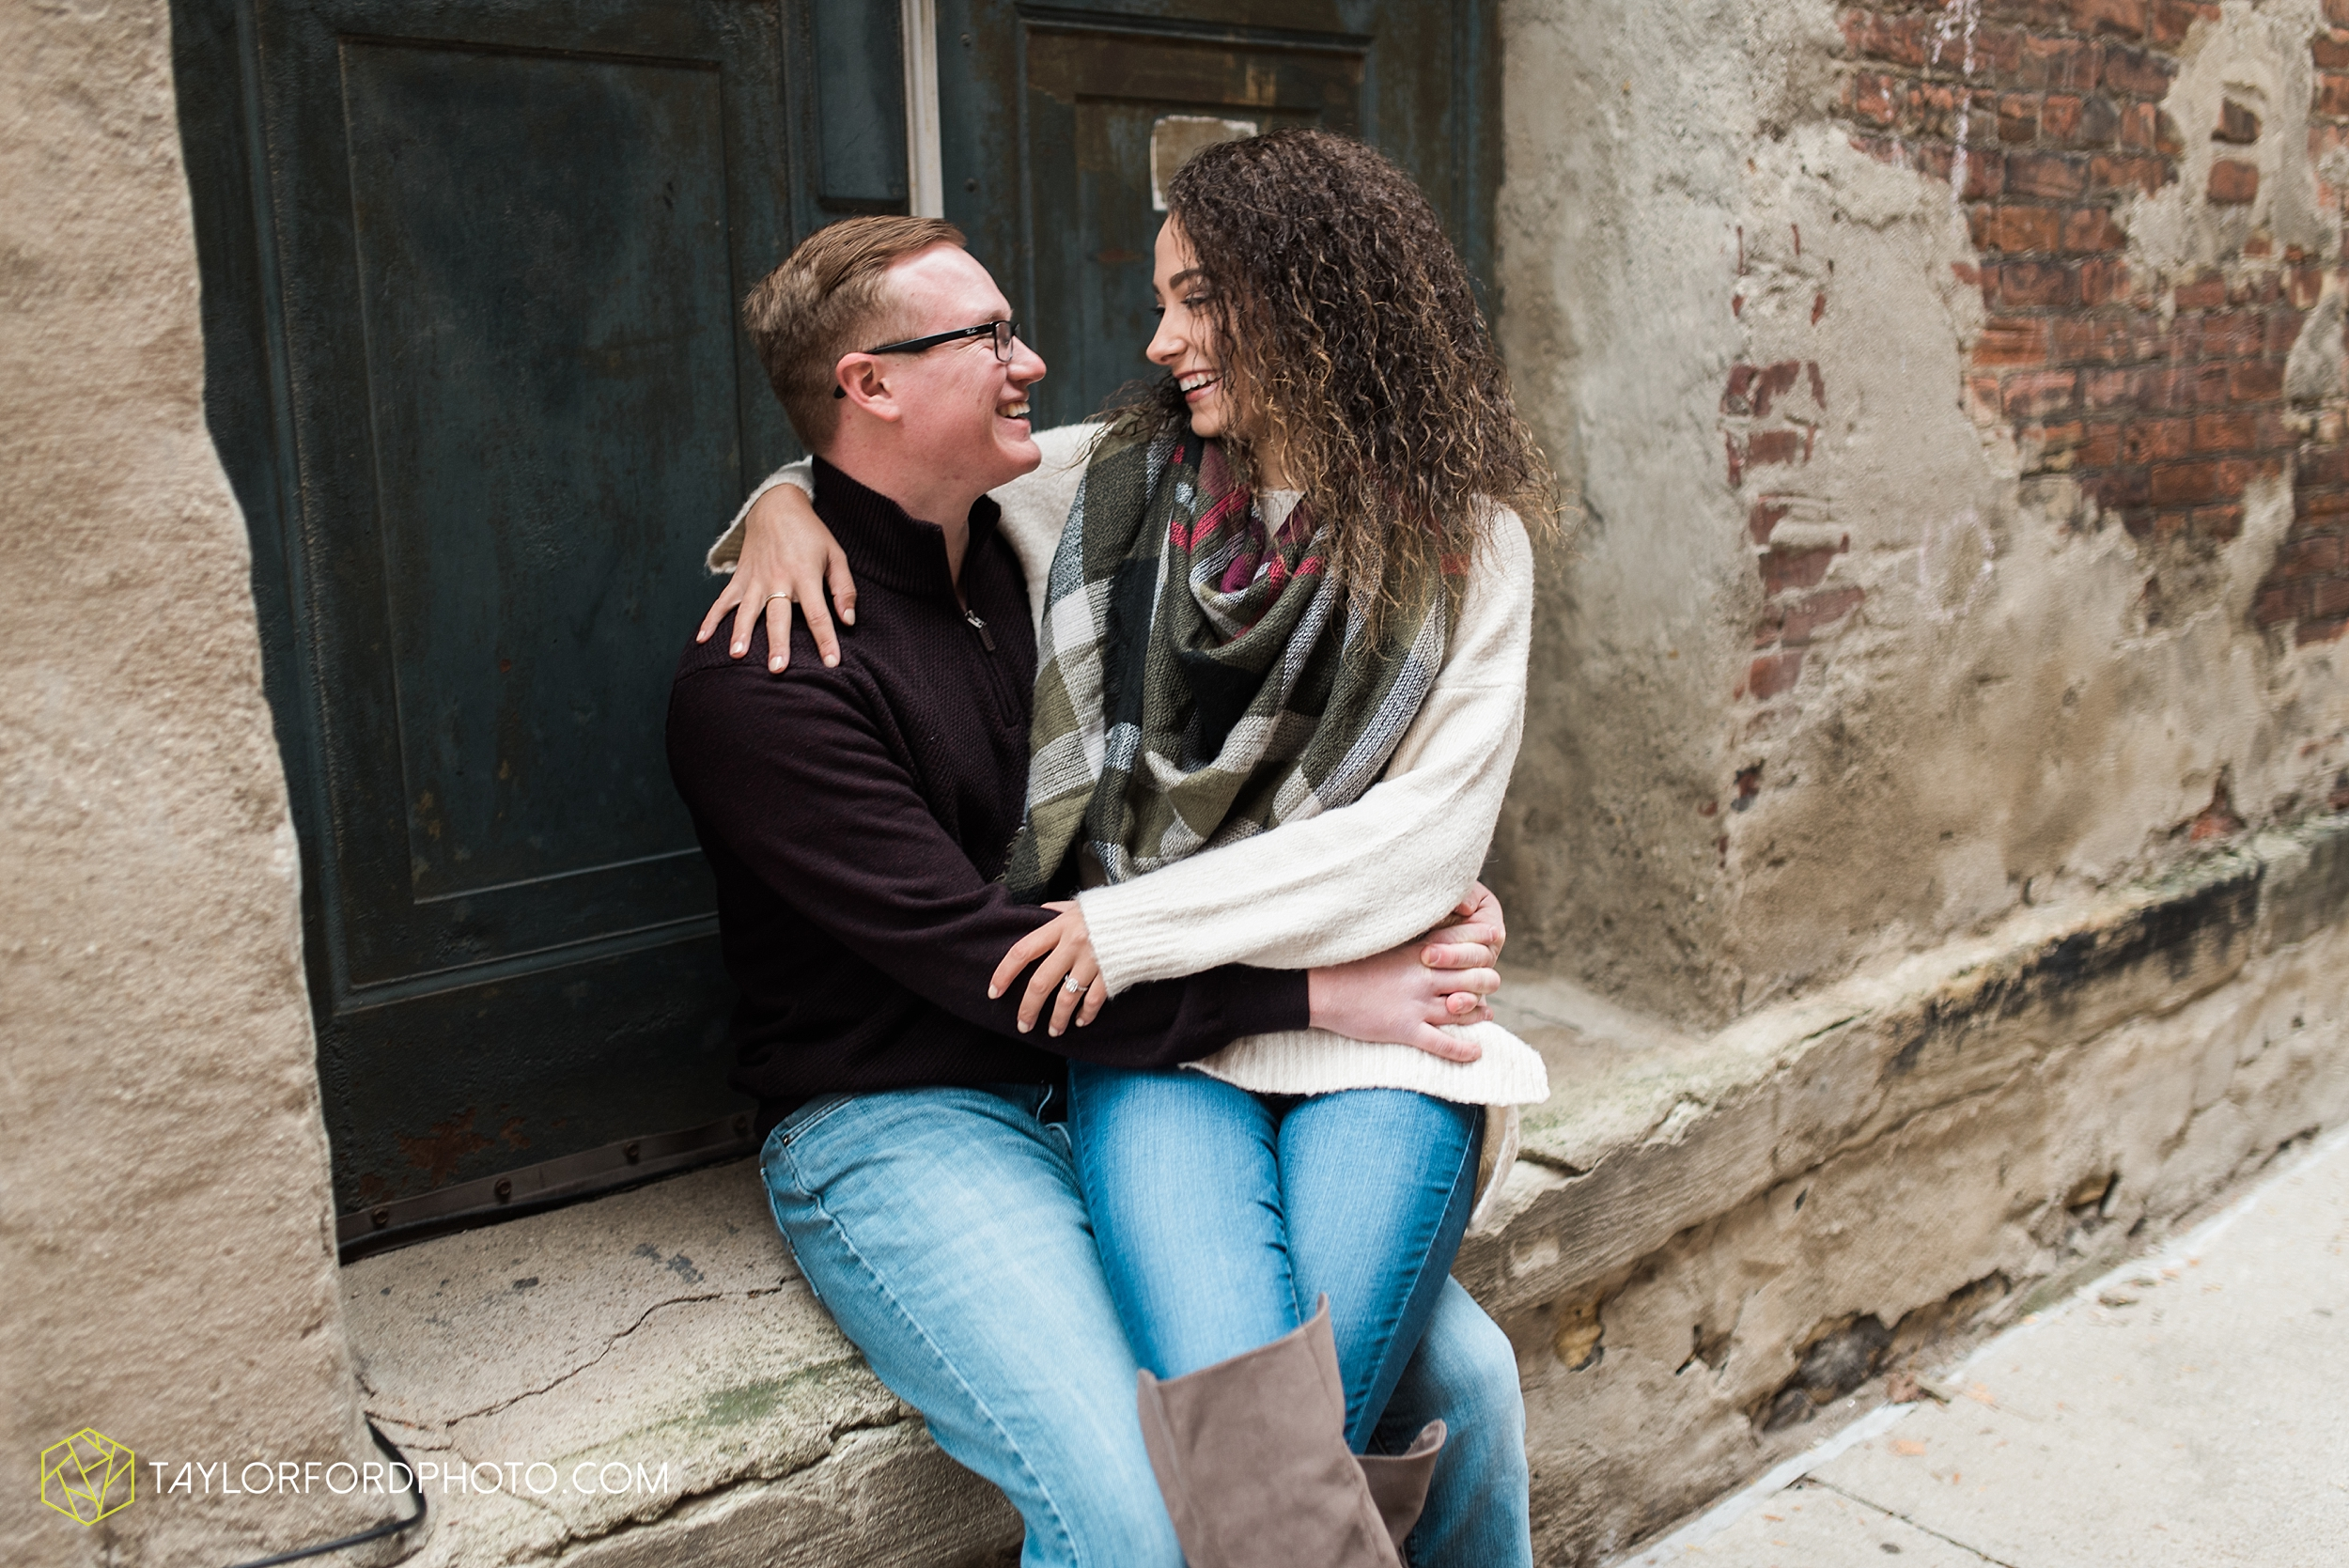 fort-wayne-indiana-engagement-photographer-rainy-day-session-Taylor-Ford-Photography_4990.jpg